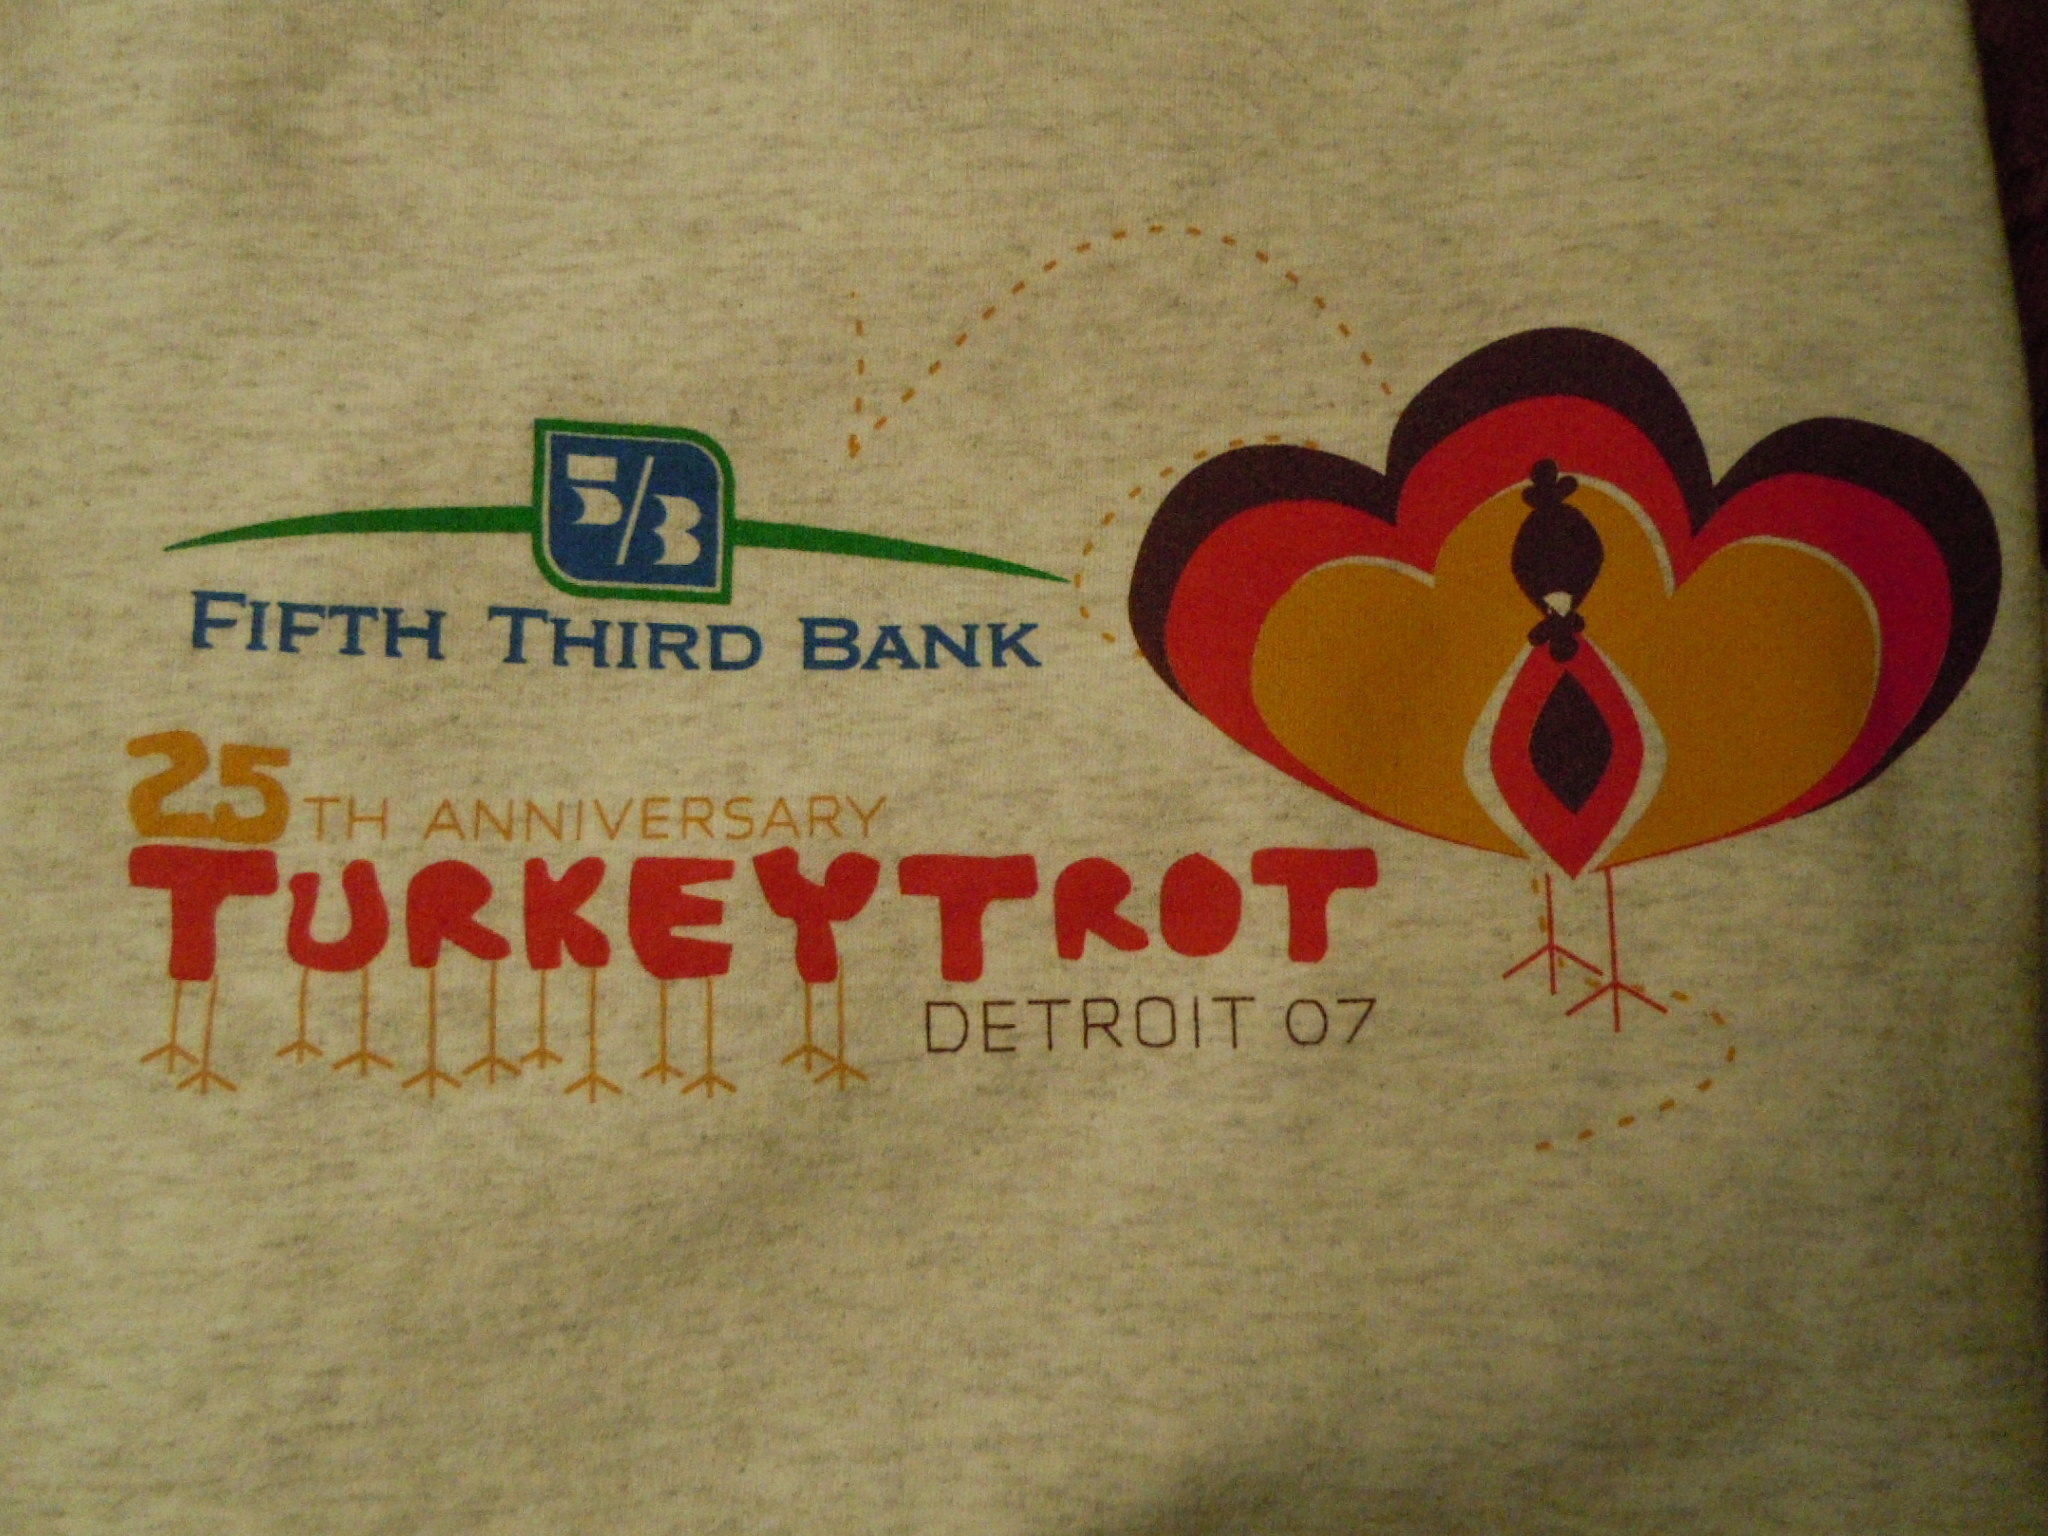 2011-11-22-turkey_trot_logo.JPG